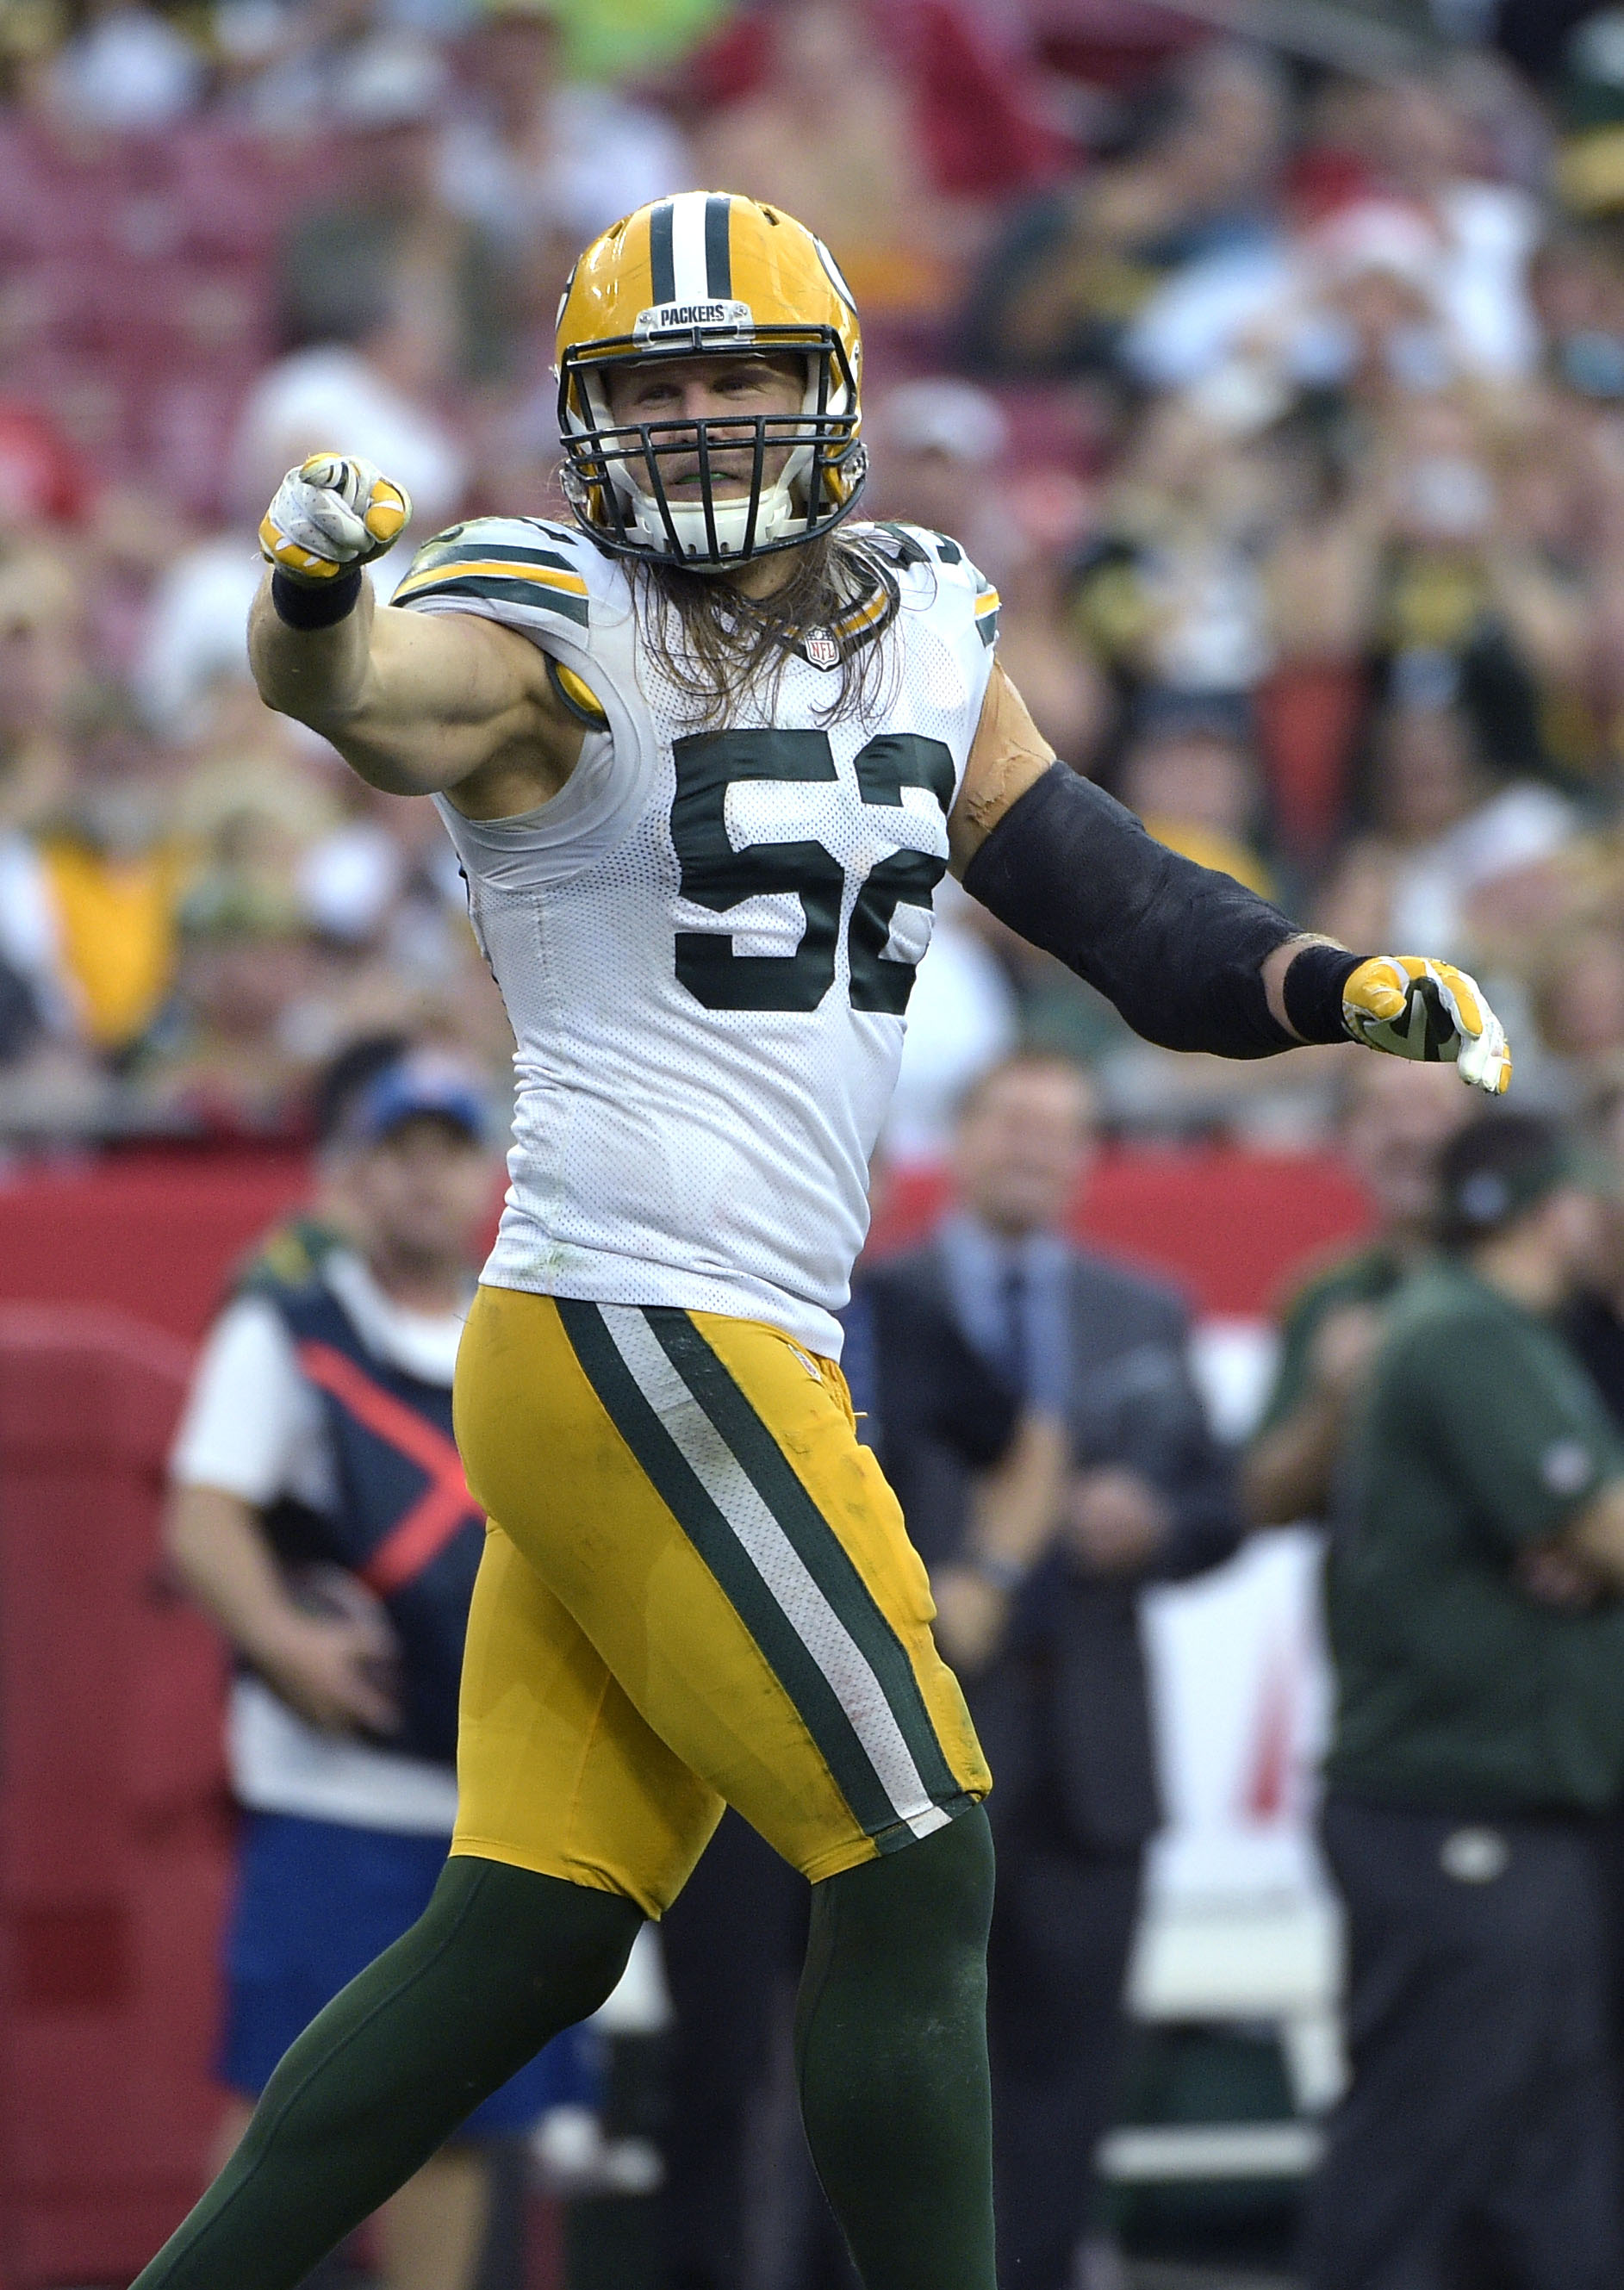 FILE - In this  Sunday, Dec. 21, 2014 file photo, Green Bay Packers outside linebacker Clay Matthews (52) celebrates after sacking Tampa Bay Buccaneers quarterback Josh McCown during the second half of an NFL football game in Tampa, Fla. (AP Photo/Phelan